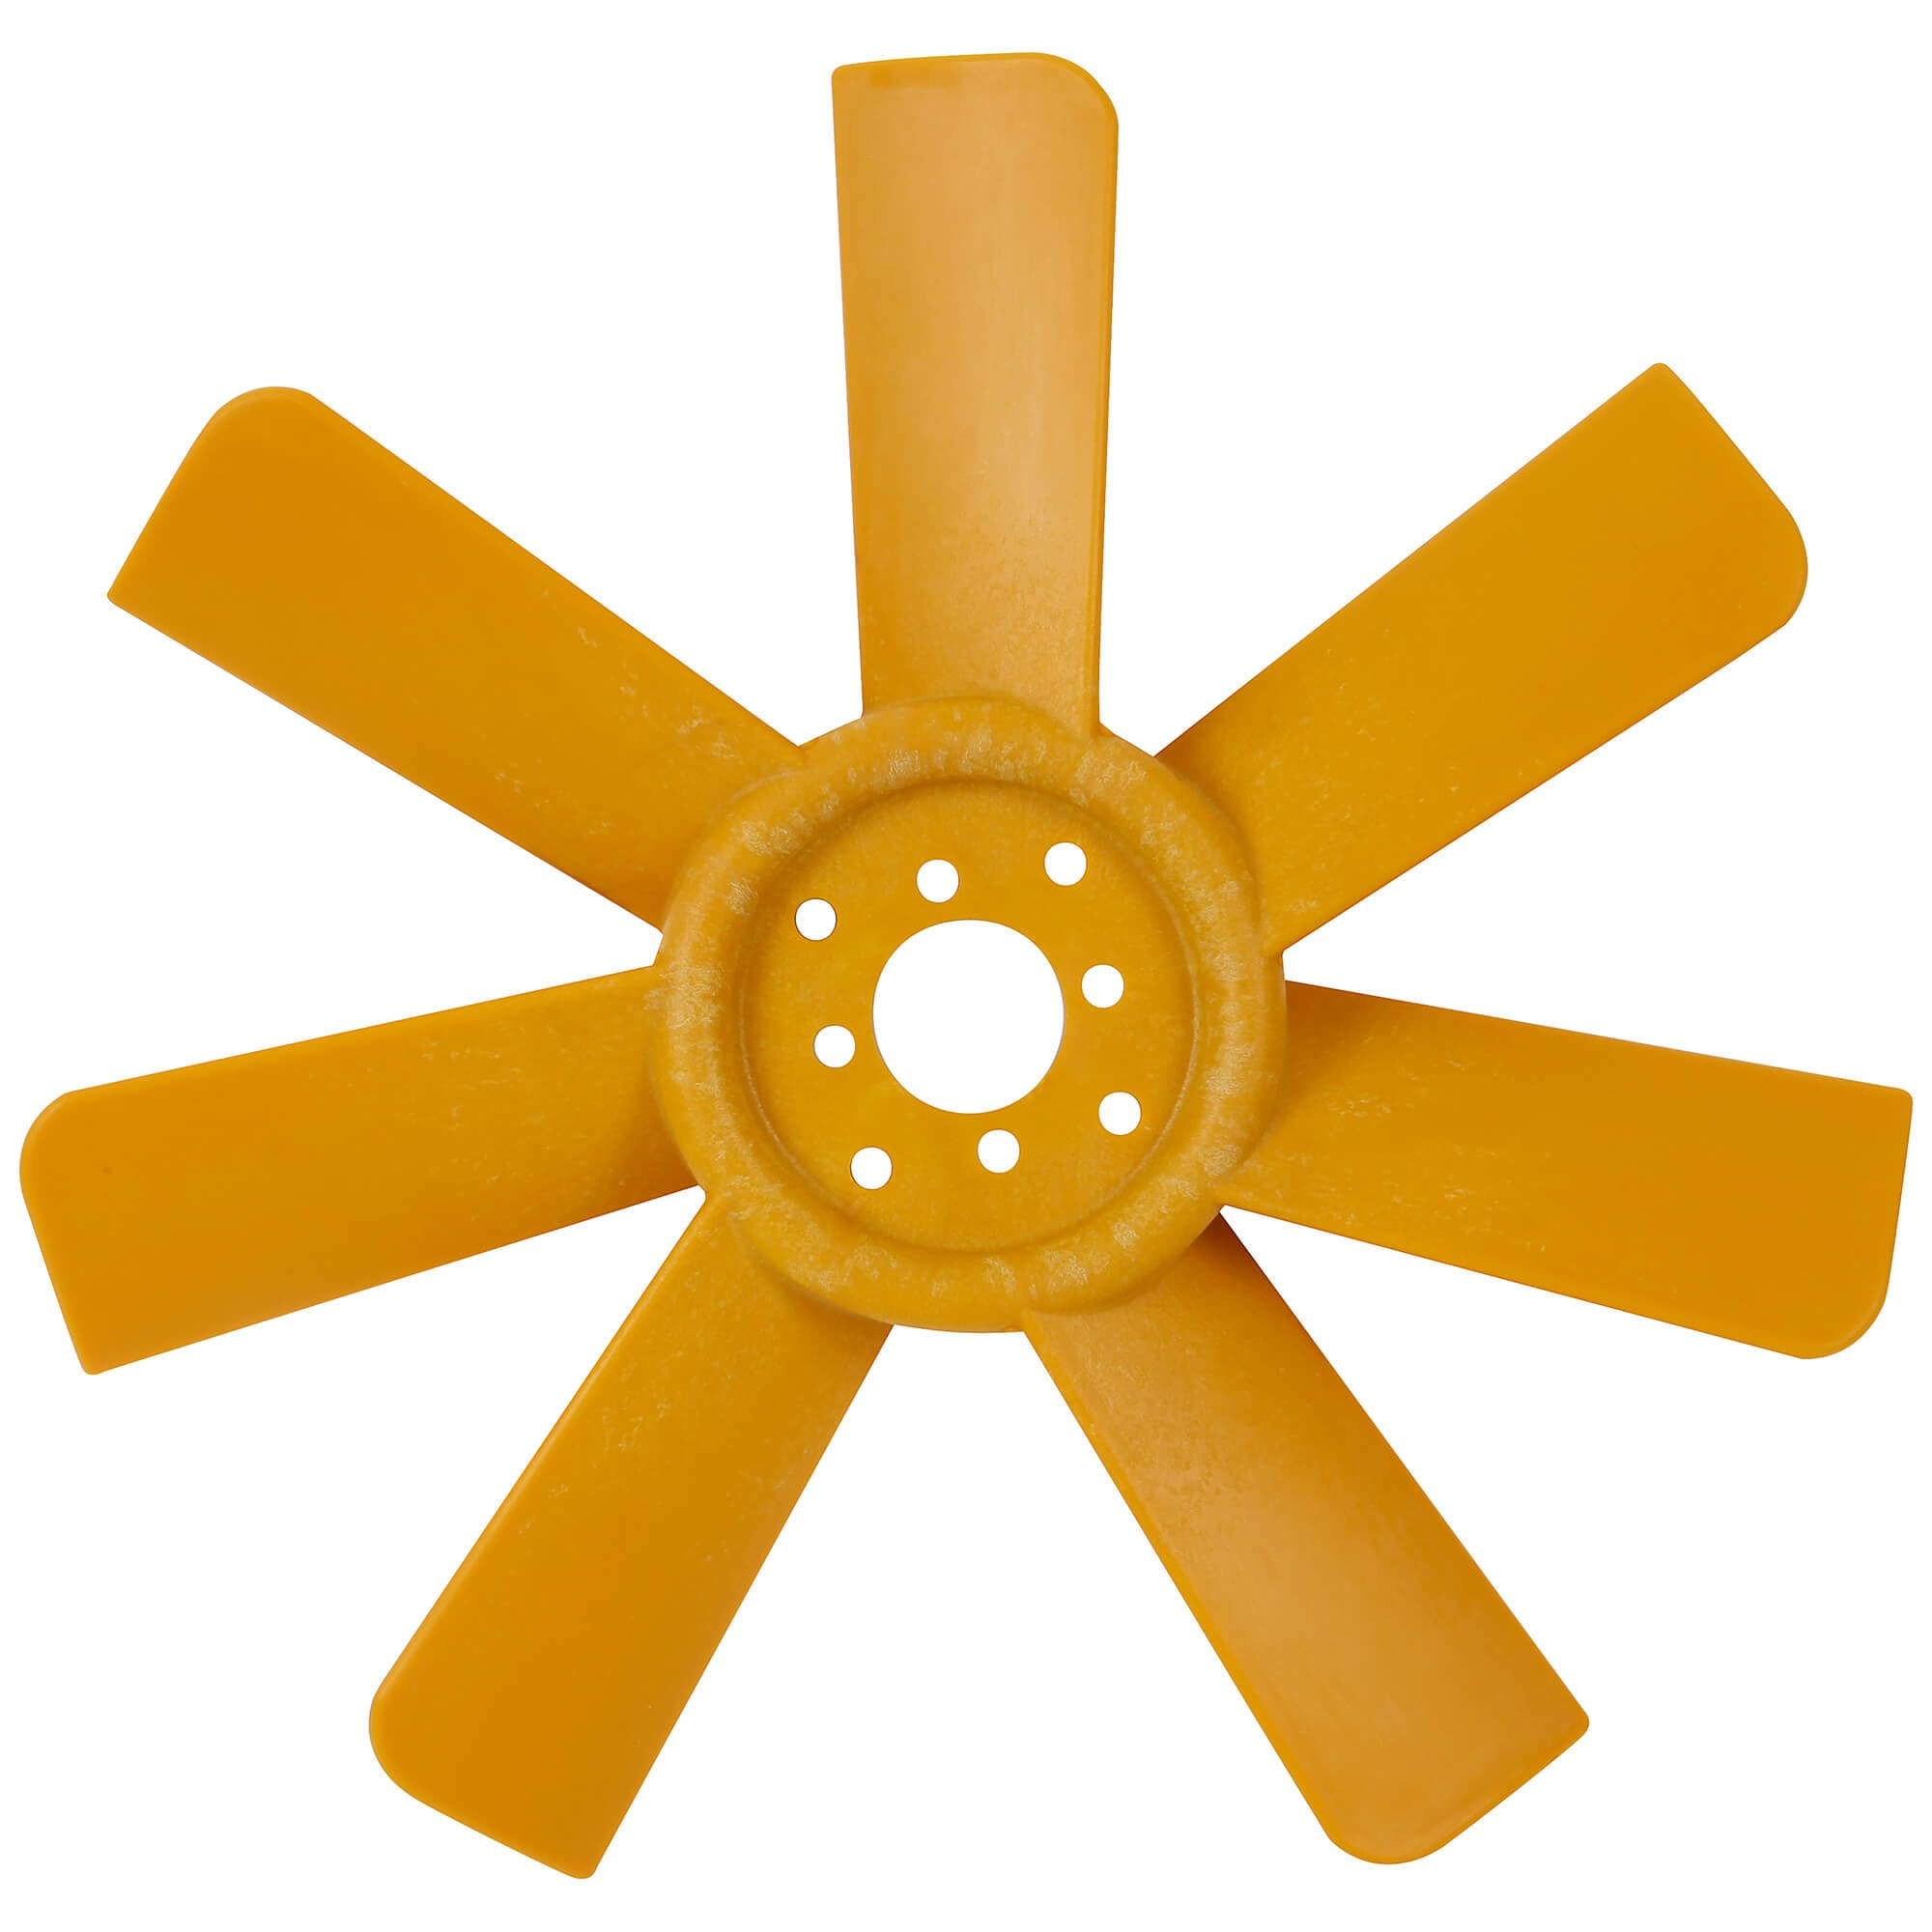 Replacement Metal Fan Blades : Fan blade nylon replacement for metal